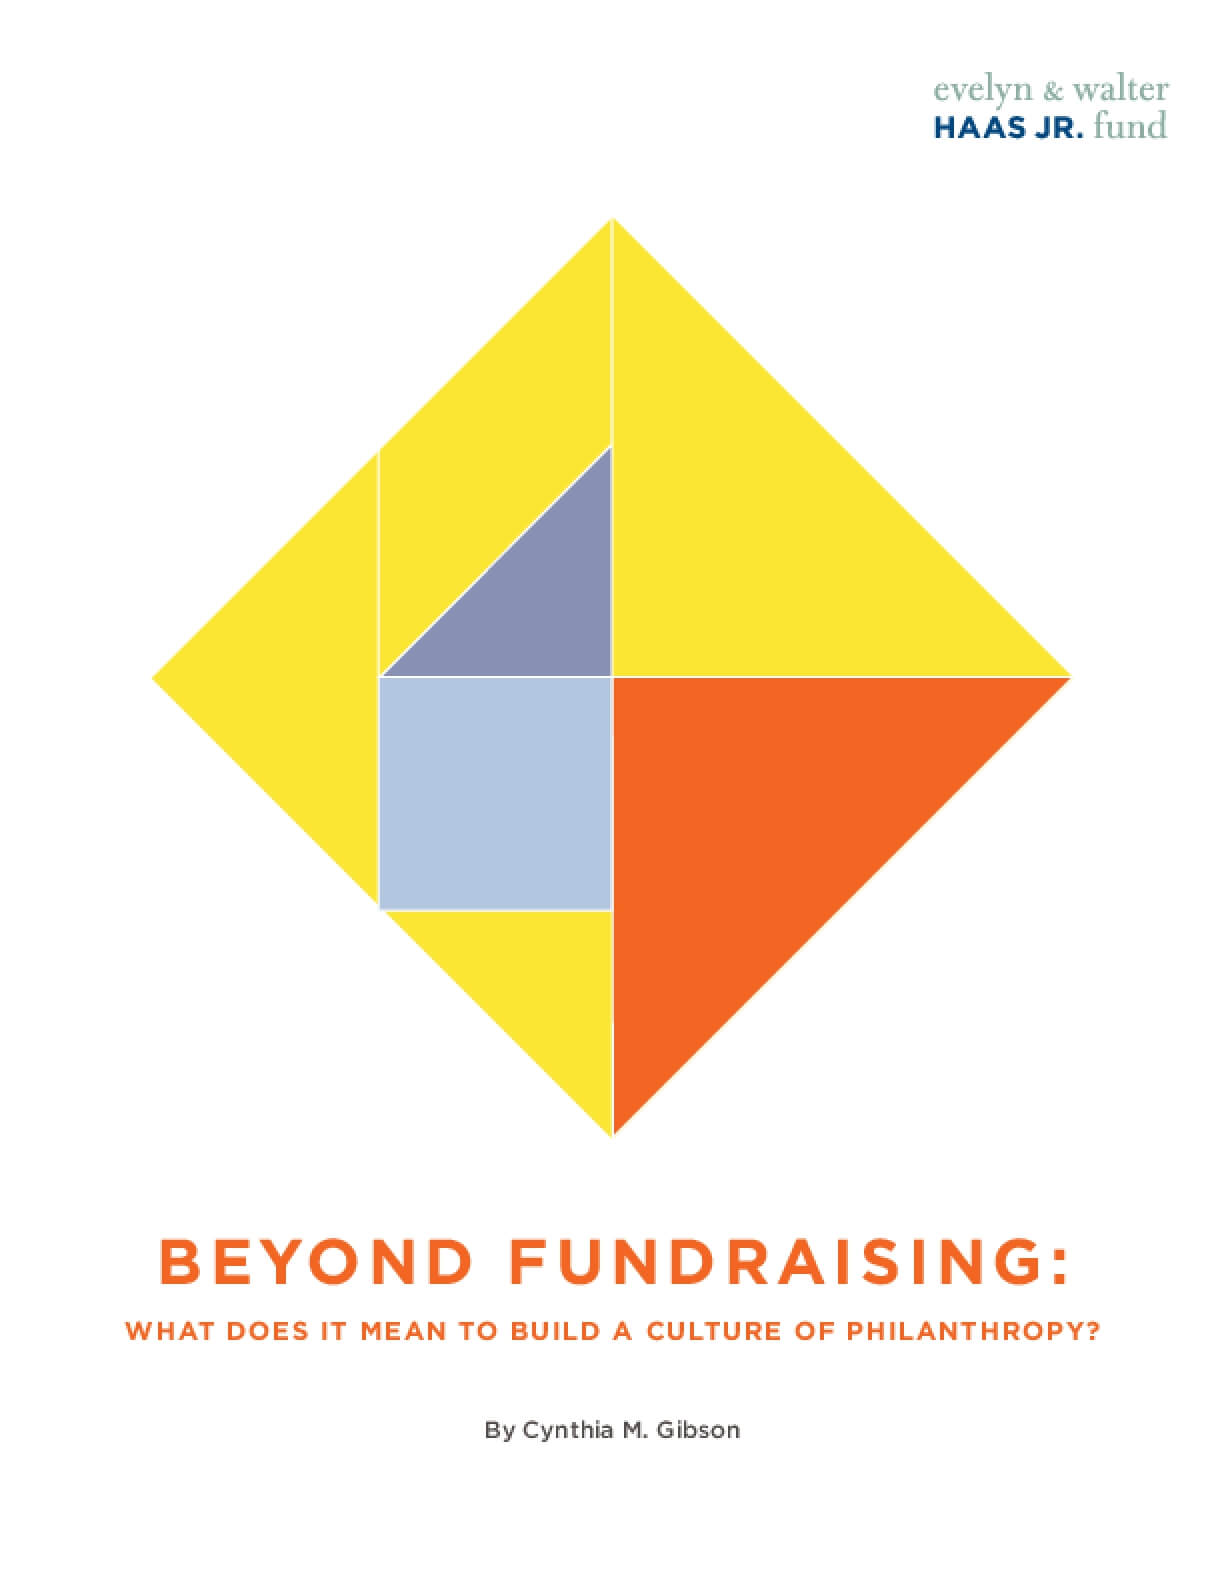 Beyond Fundraising: What Does It Mean to Build a Culture of Philanthropy?